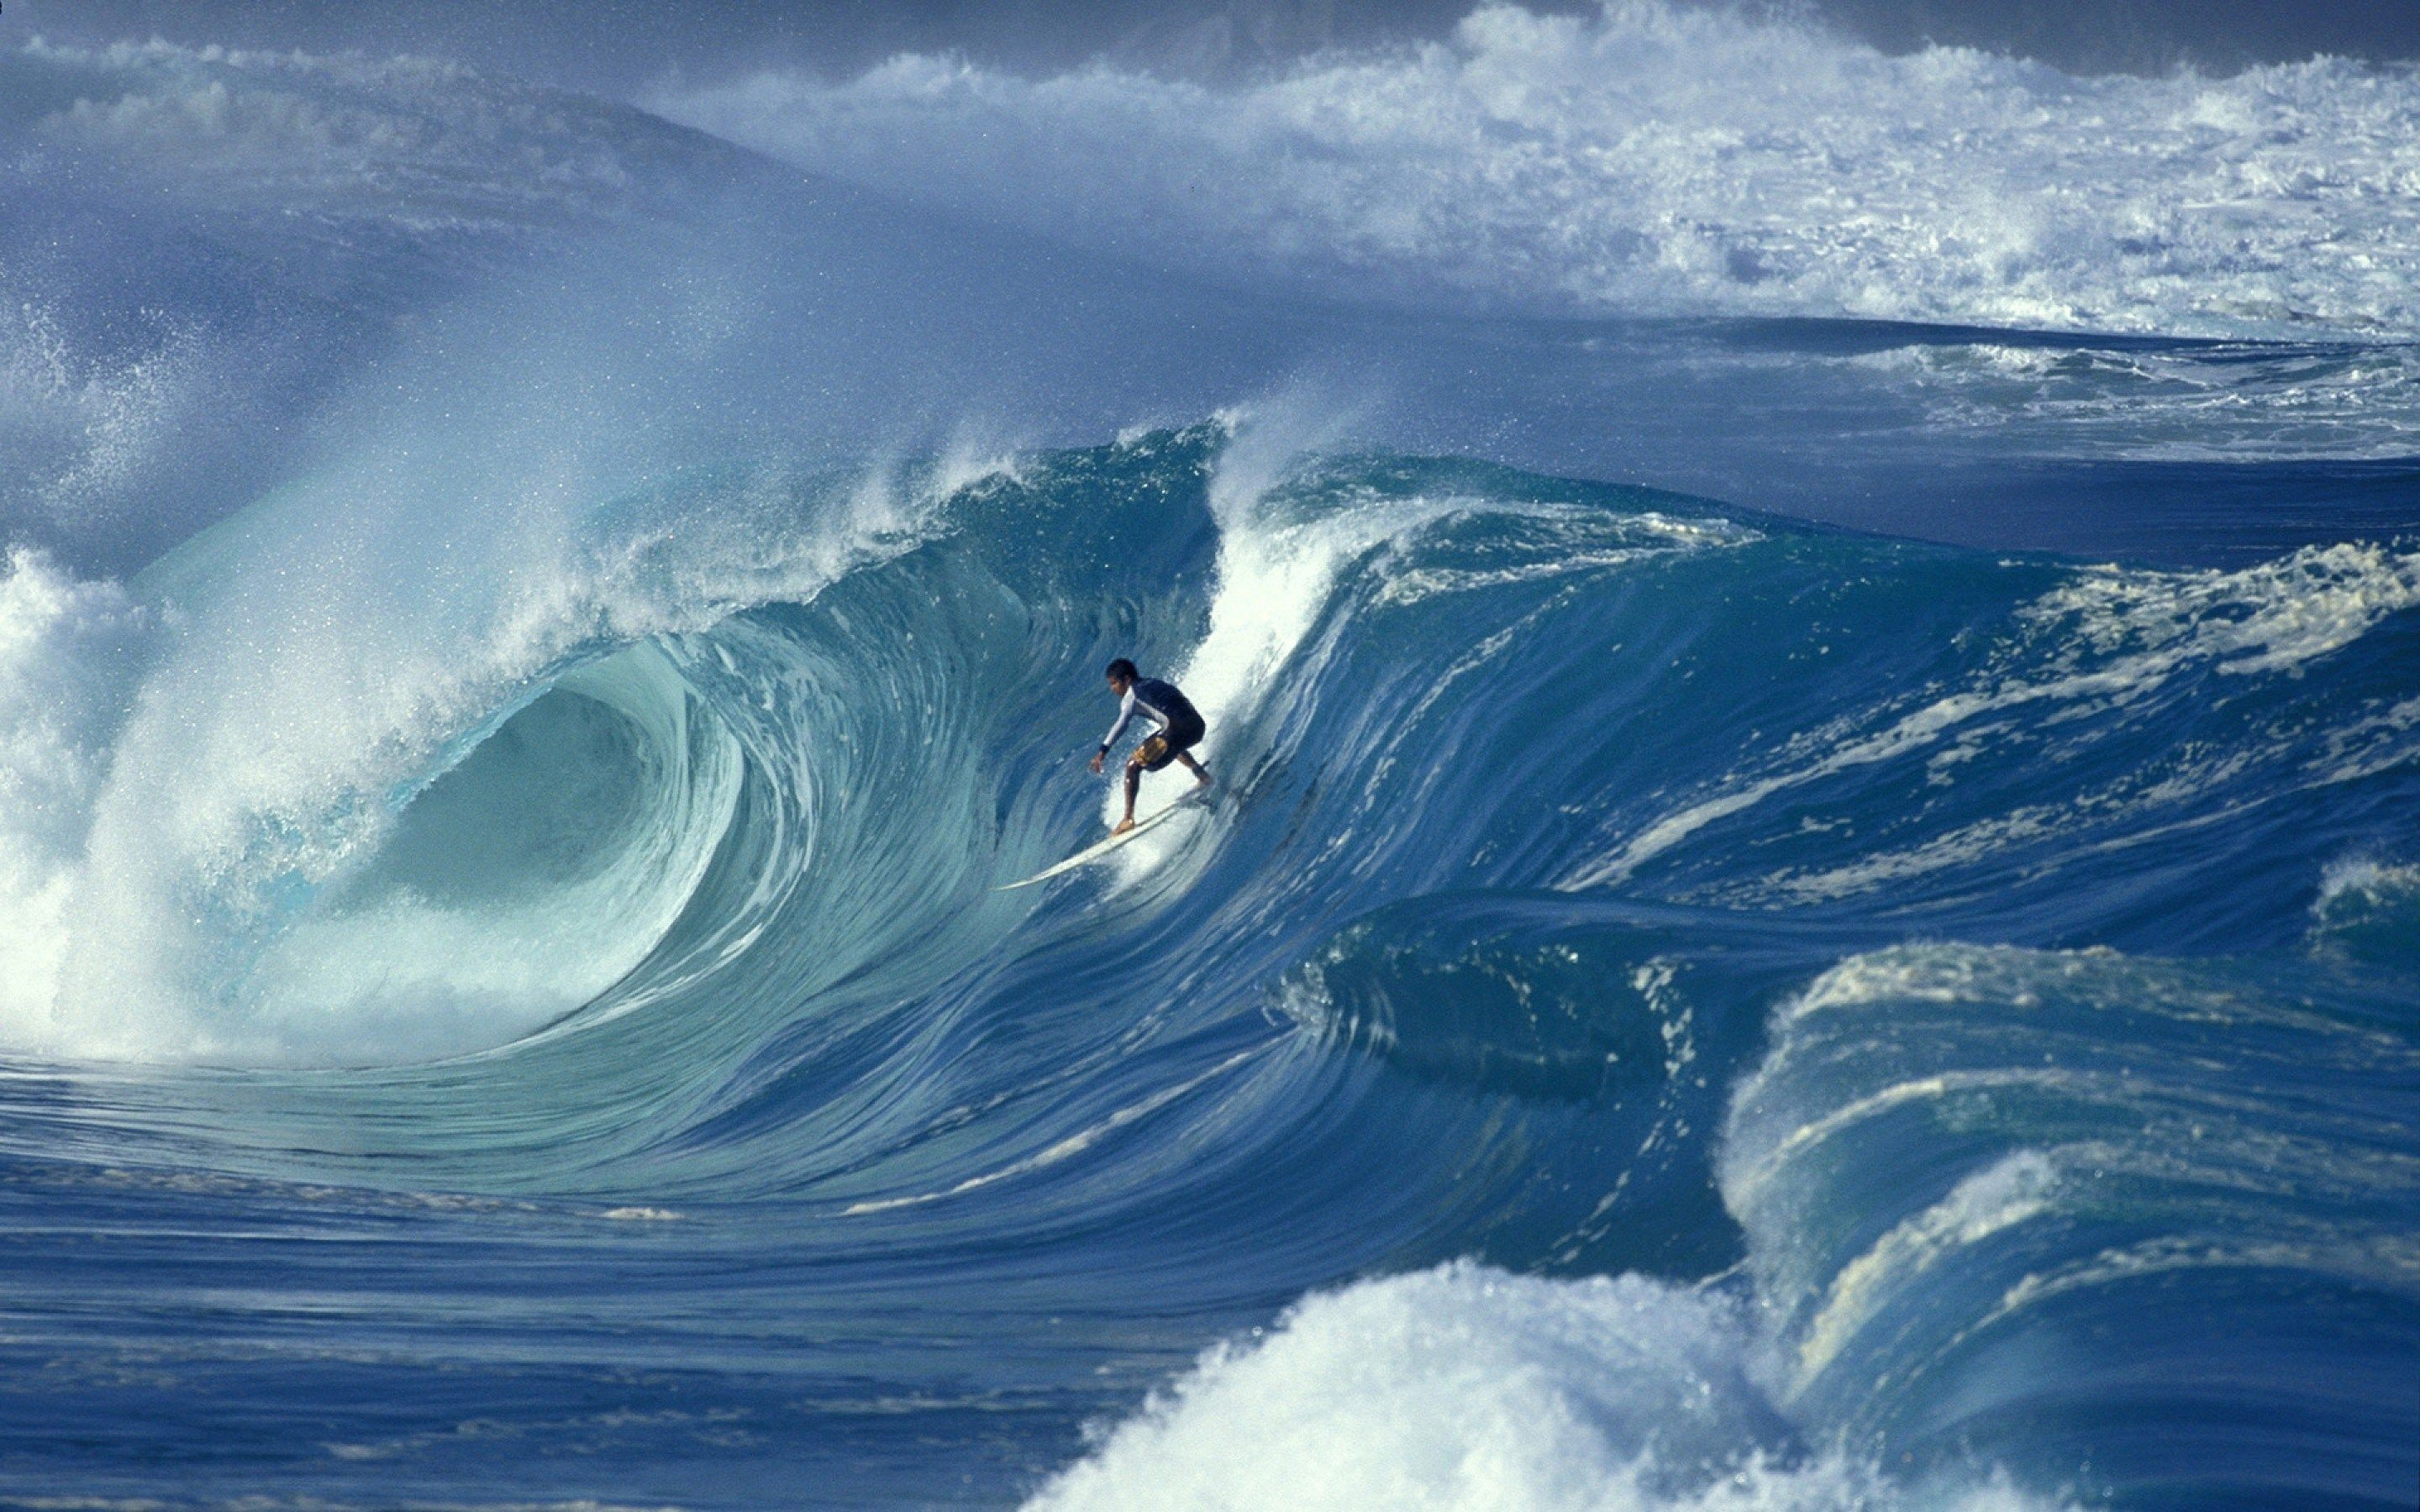 2880x1800 Extreme Surfing Wallpapers Inspirational Images Hd Surfing Backgrounds O  Oshenka Of Extreme Surfing Wallpapers Best Of